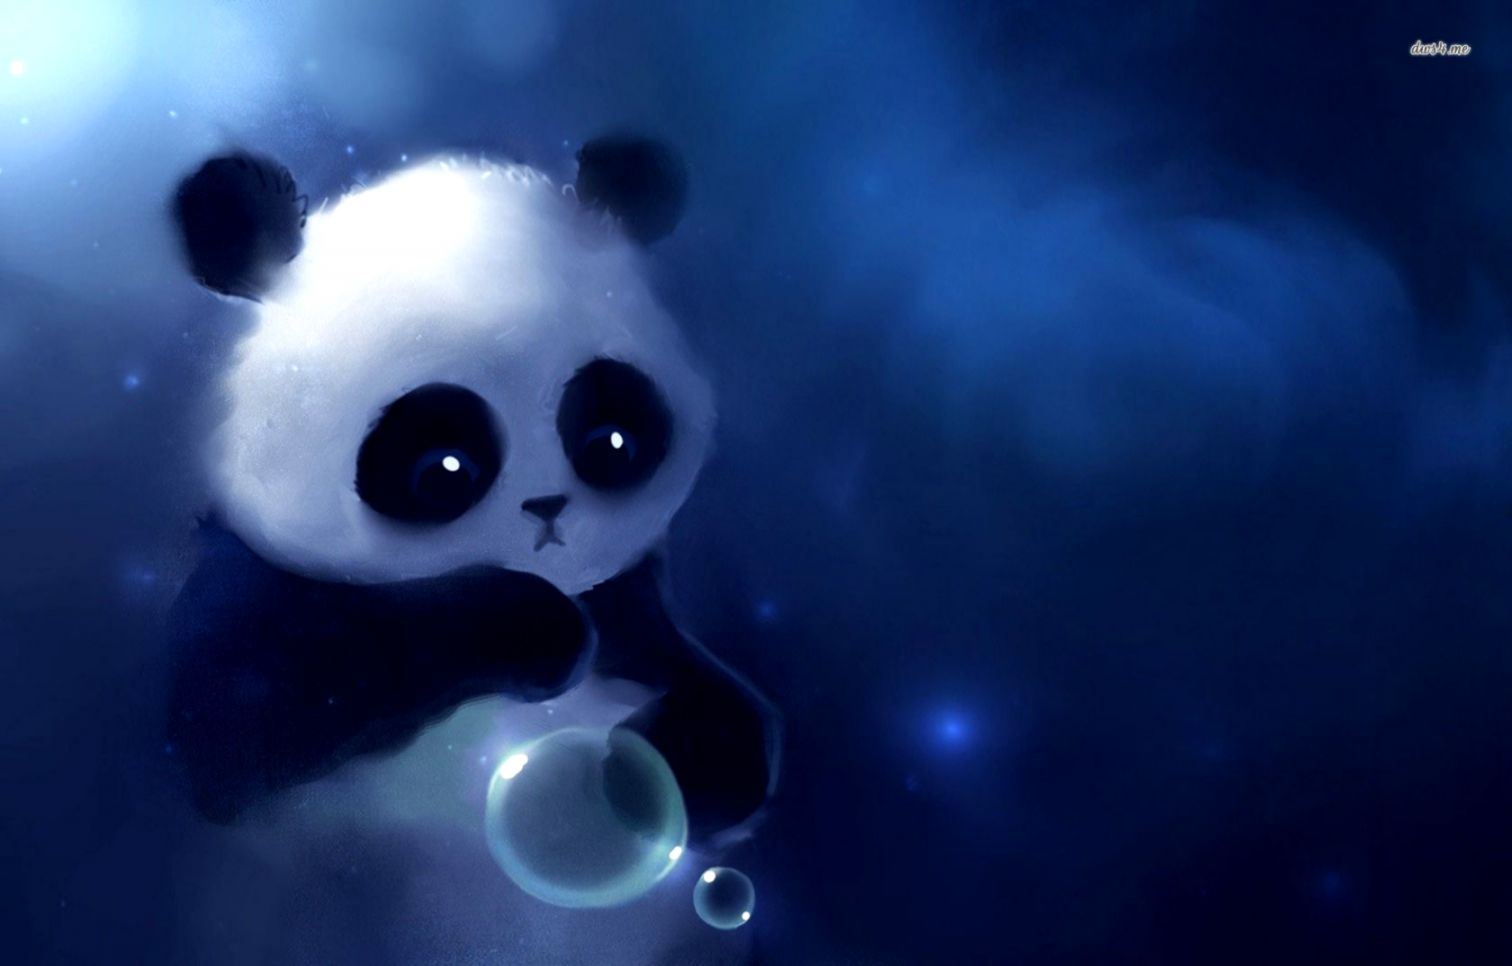 Cute Baby Panda Background Wallpapers Savage